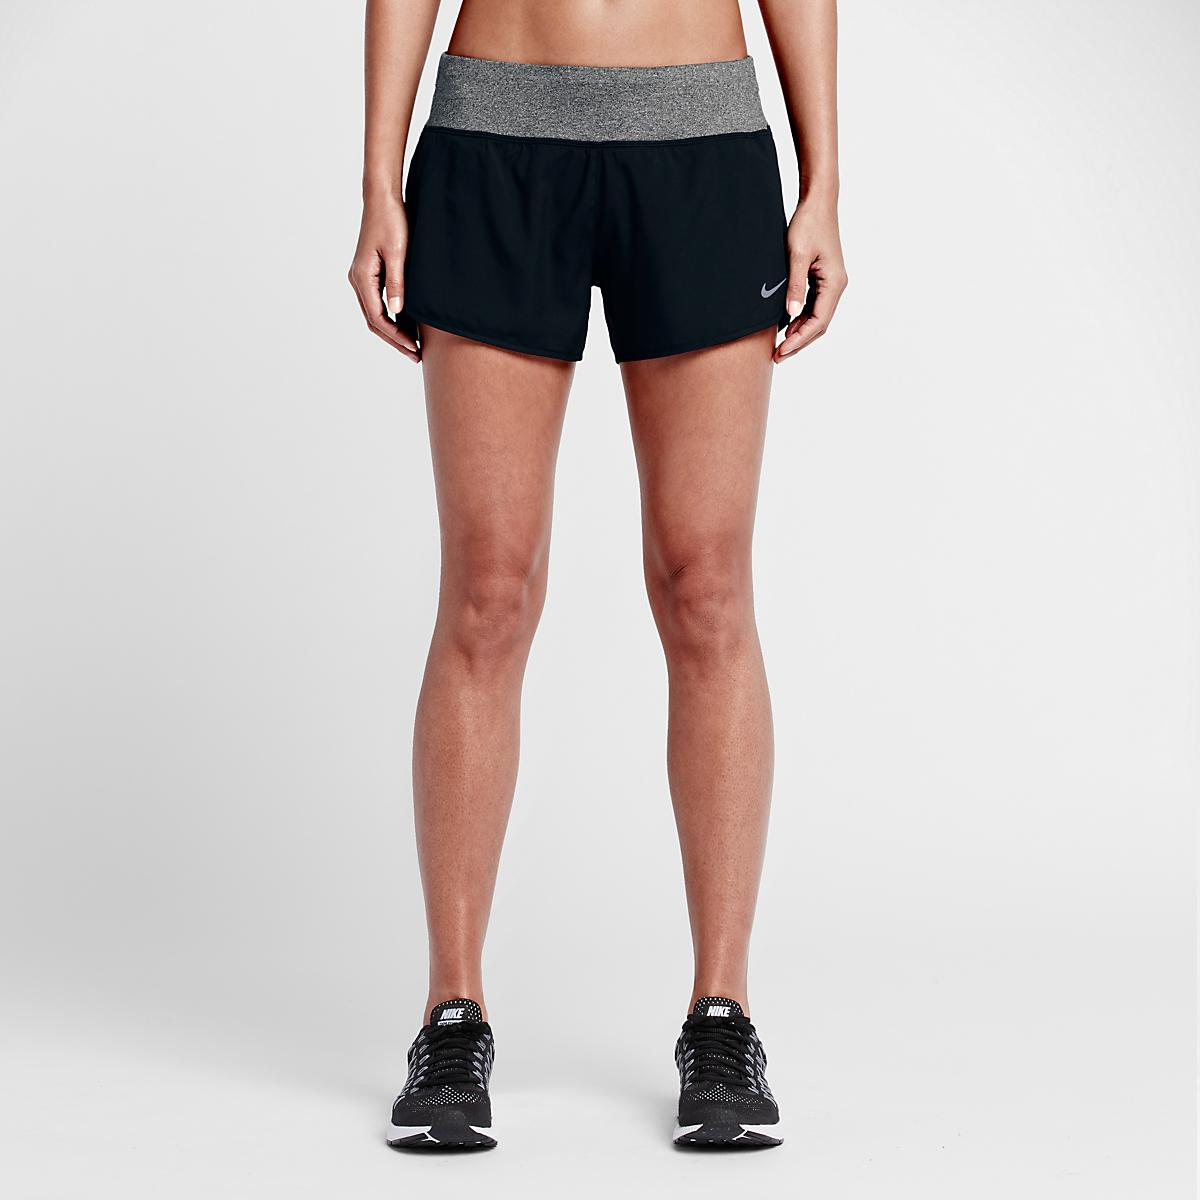 womens nike 3 rival short lined shorts at road runner sports. Black Bedroom Furniture Sets. Home Design Ideas